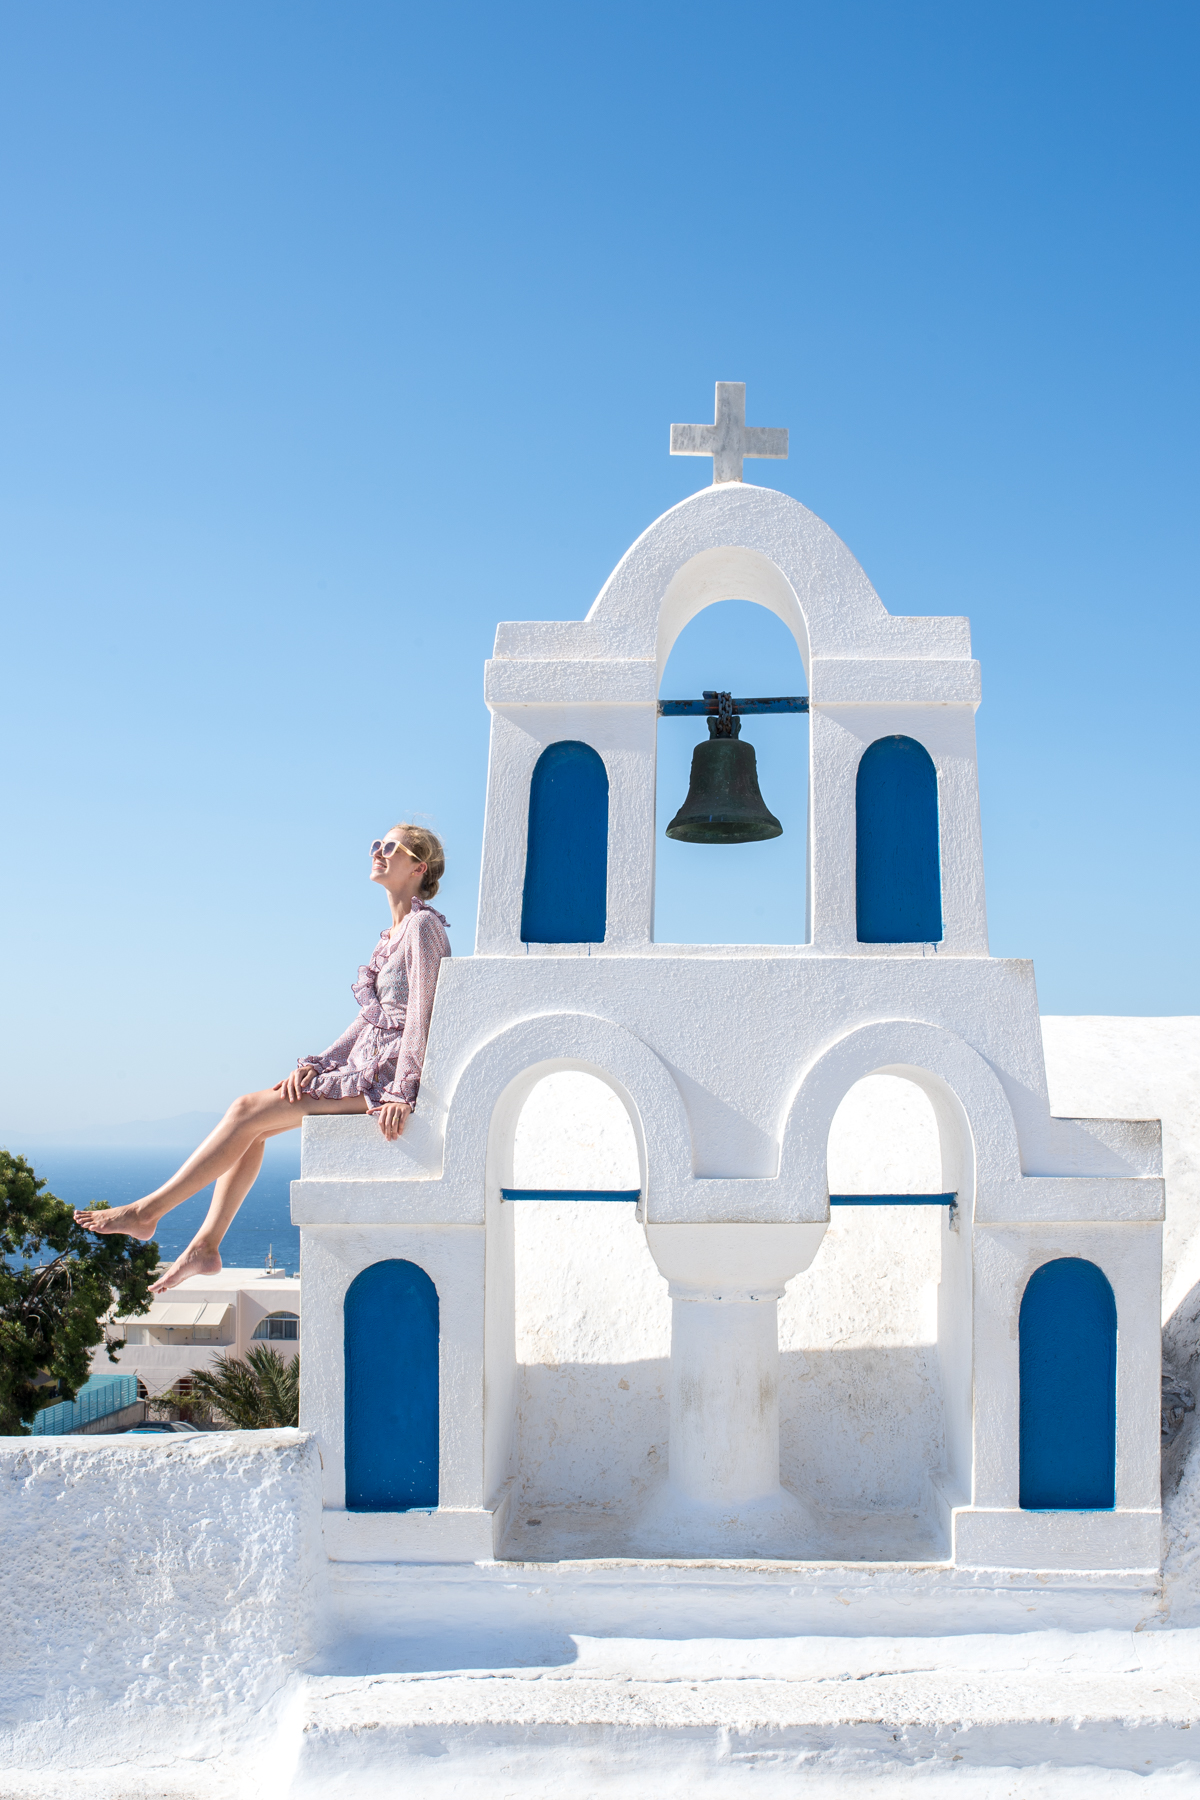 Stacie Flinner Travel Guide Santorini Greece-48.jpg